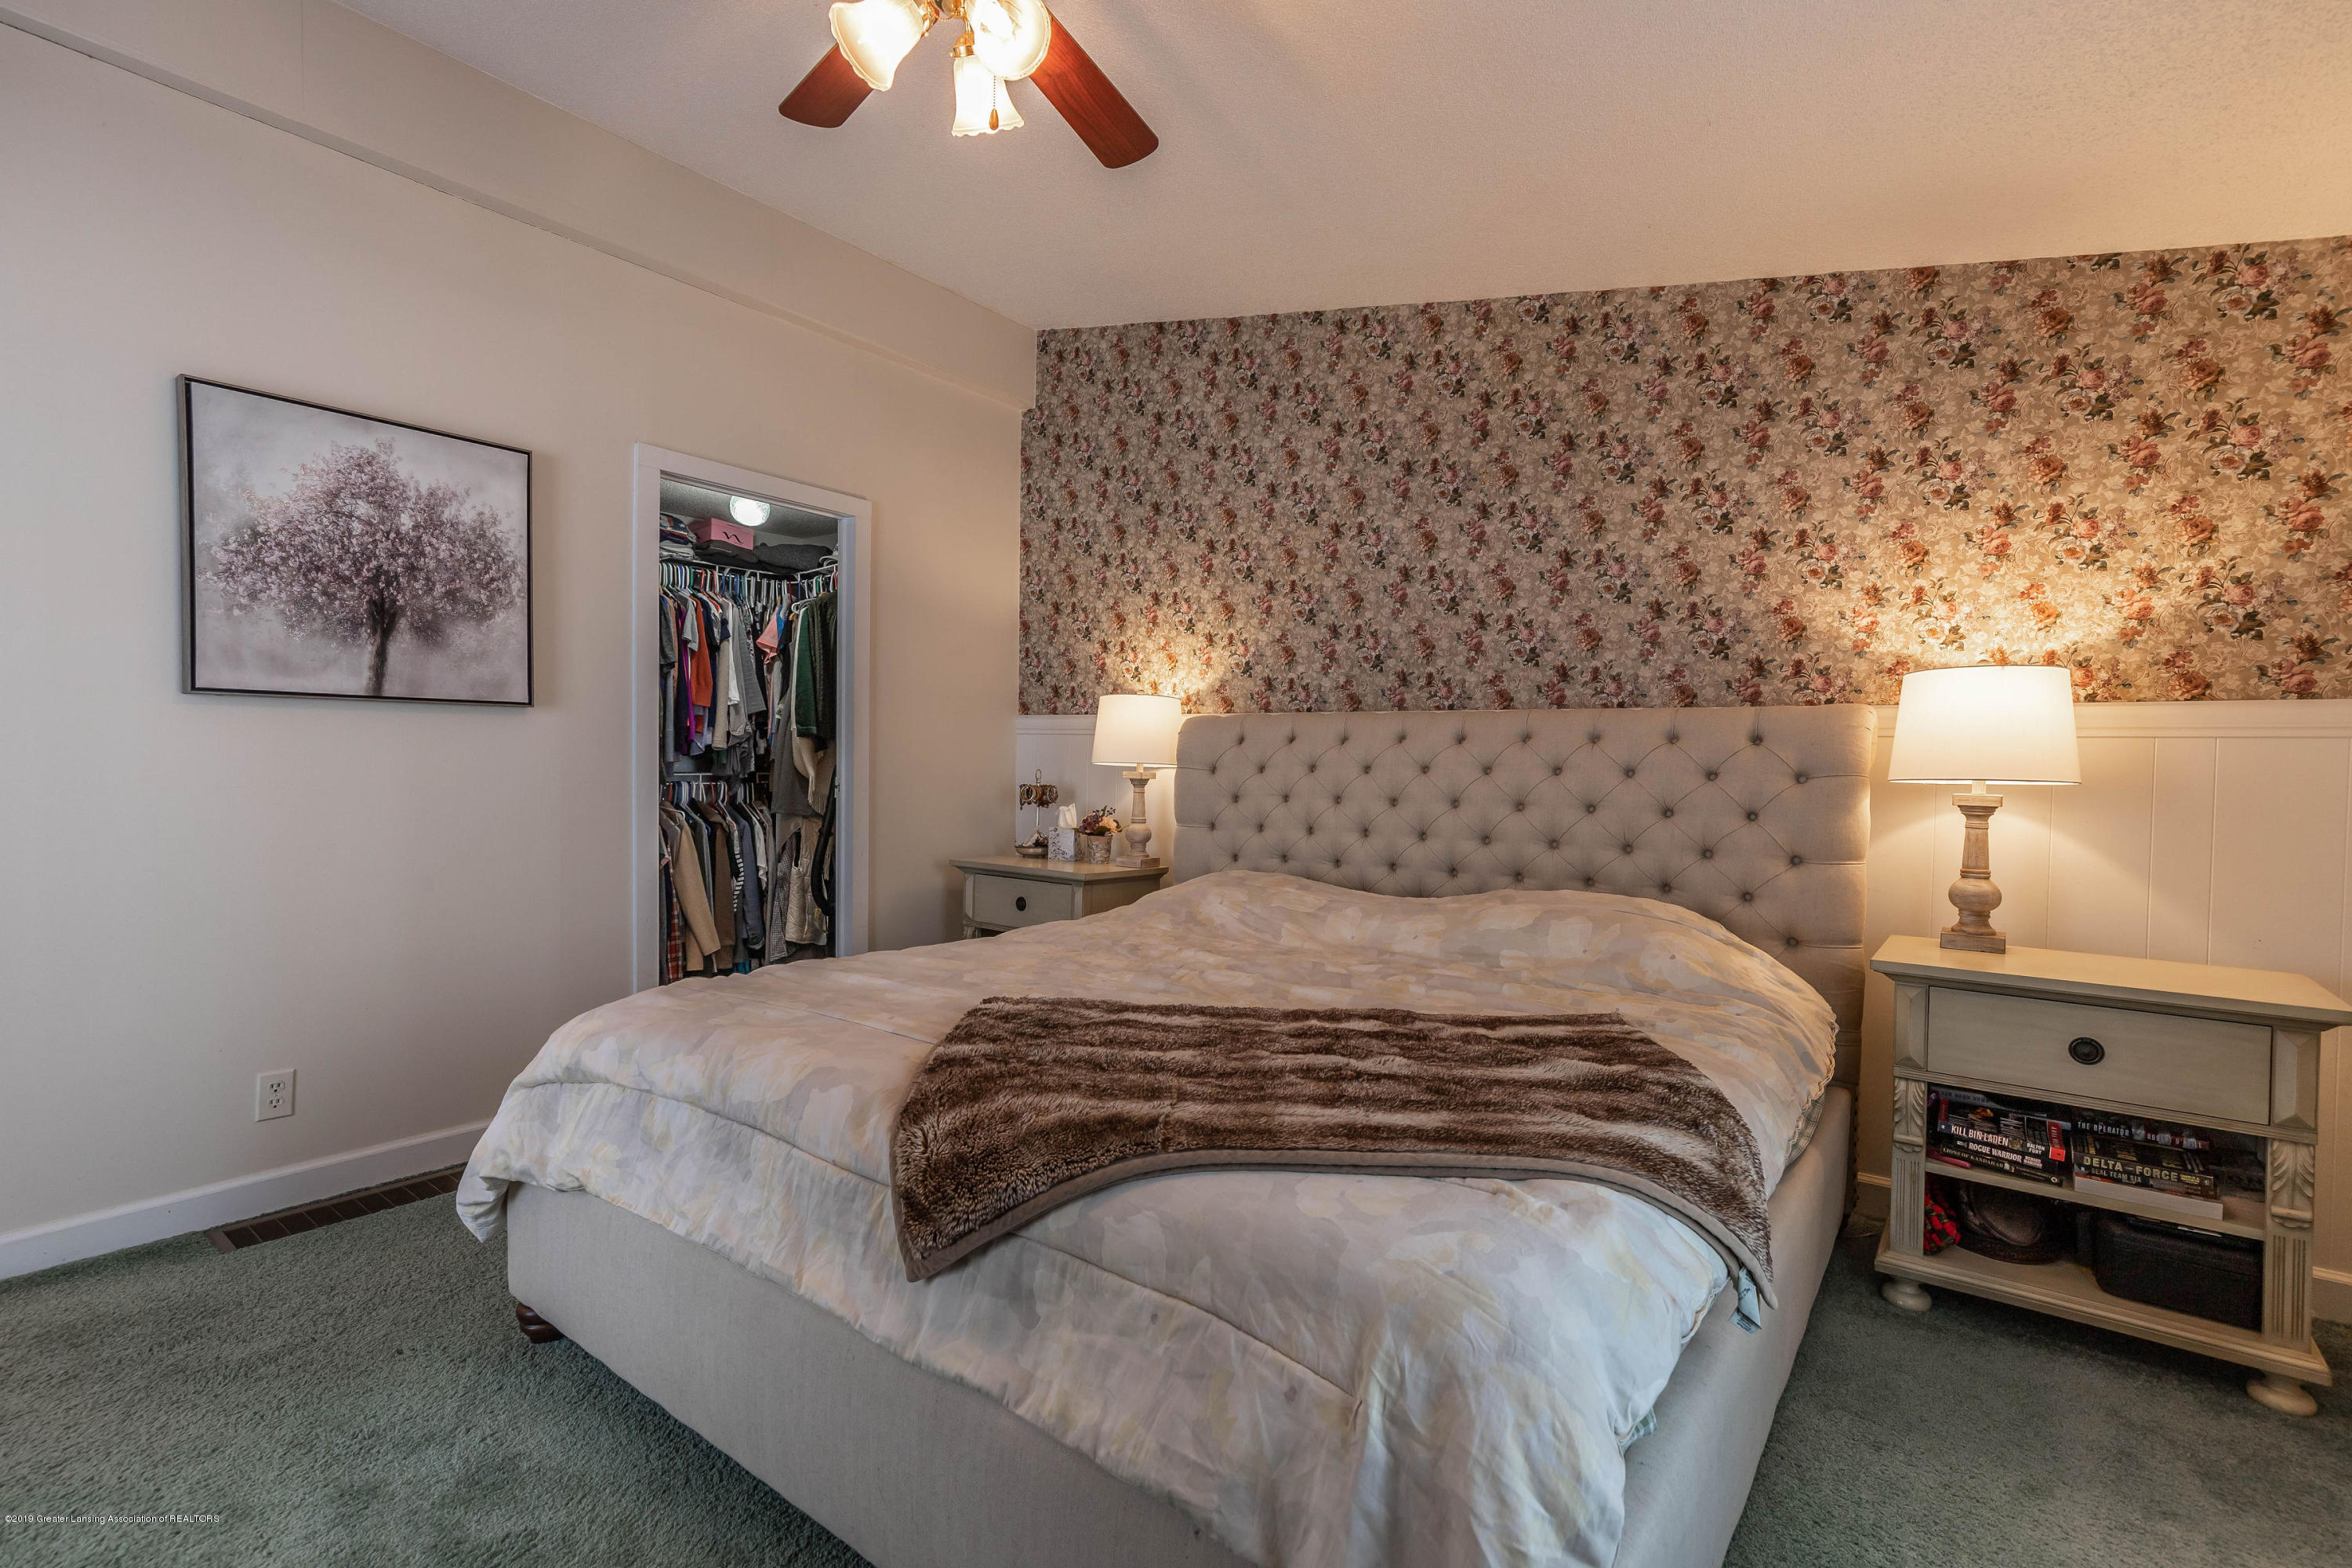 1504 S Chester Rd - chesterbed31(1of1) - 22